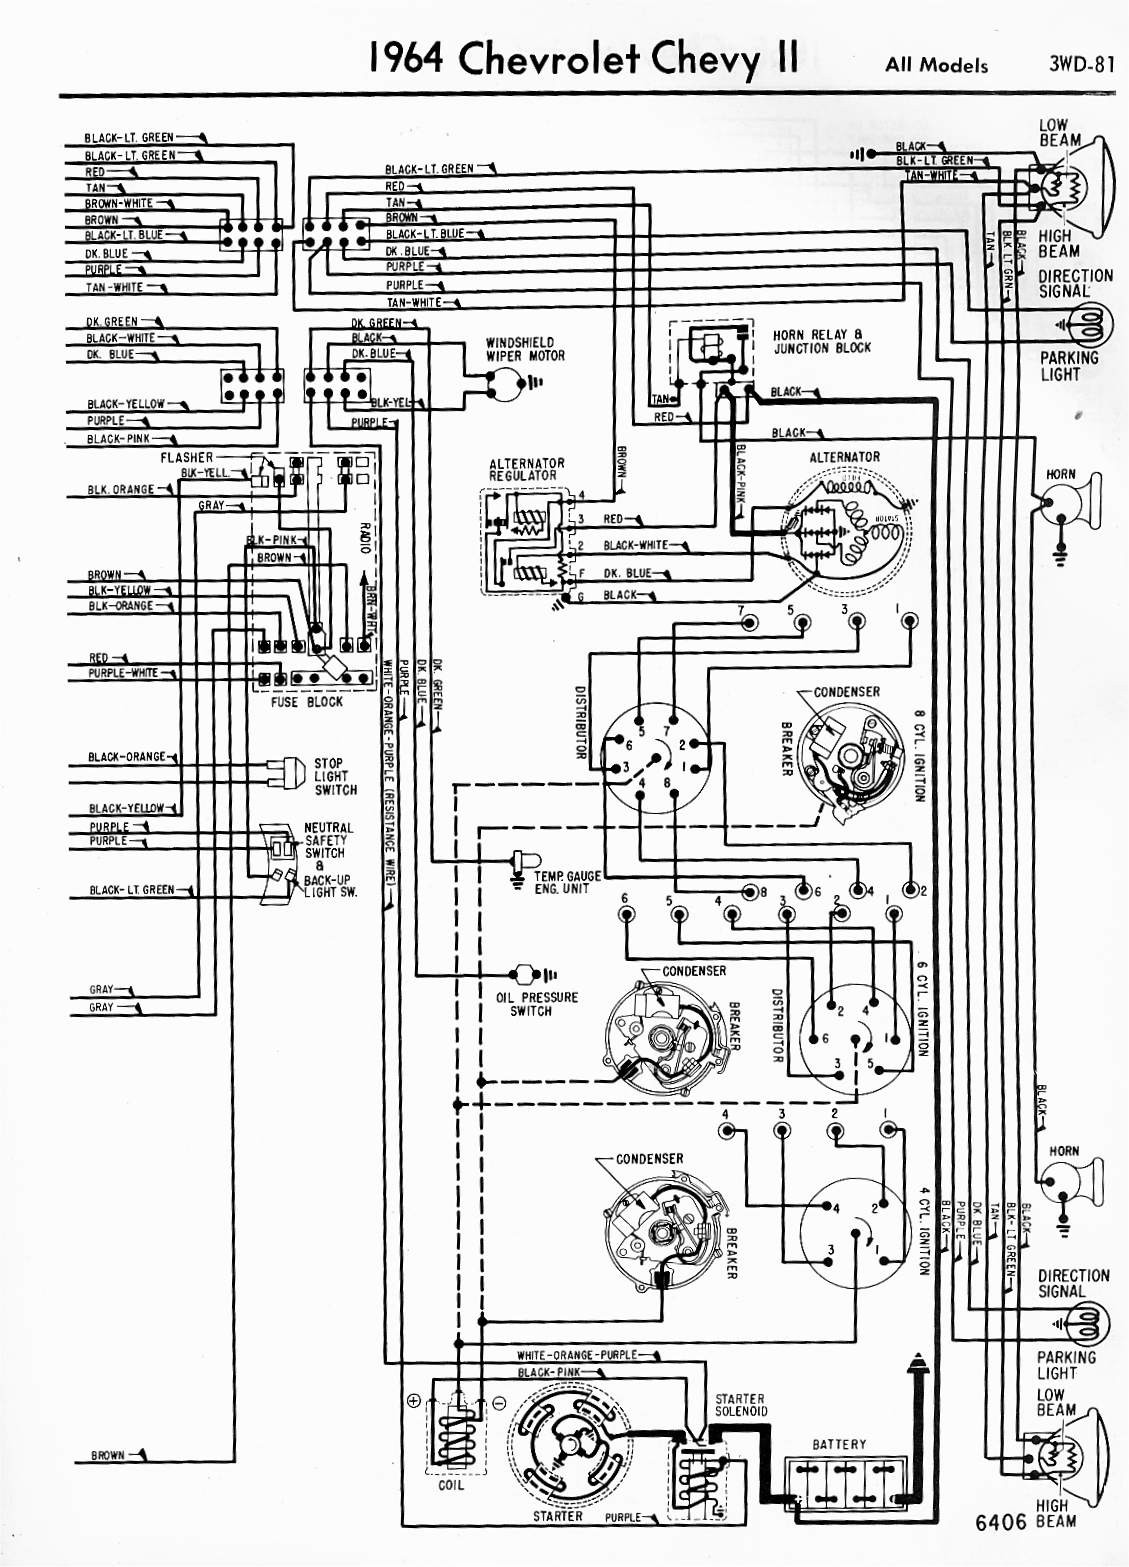 chevy ii wiring diagram wiring rh westpol co 74 Nova Wiring Diagram 77 Nova Wiring Diagram